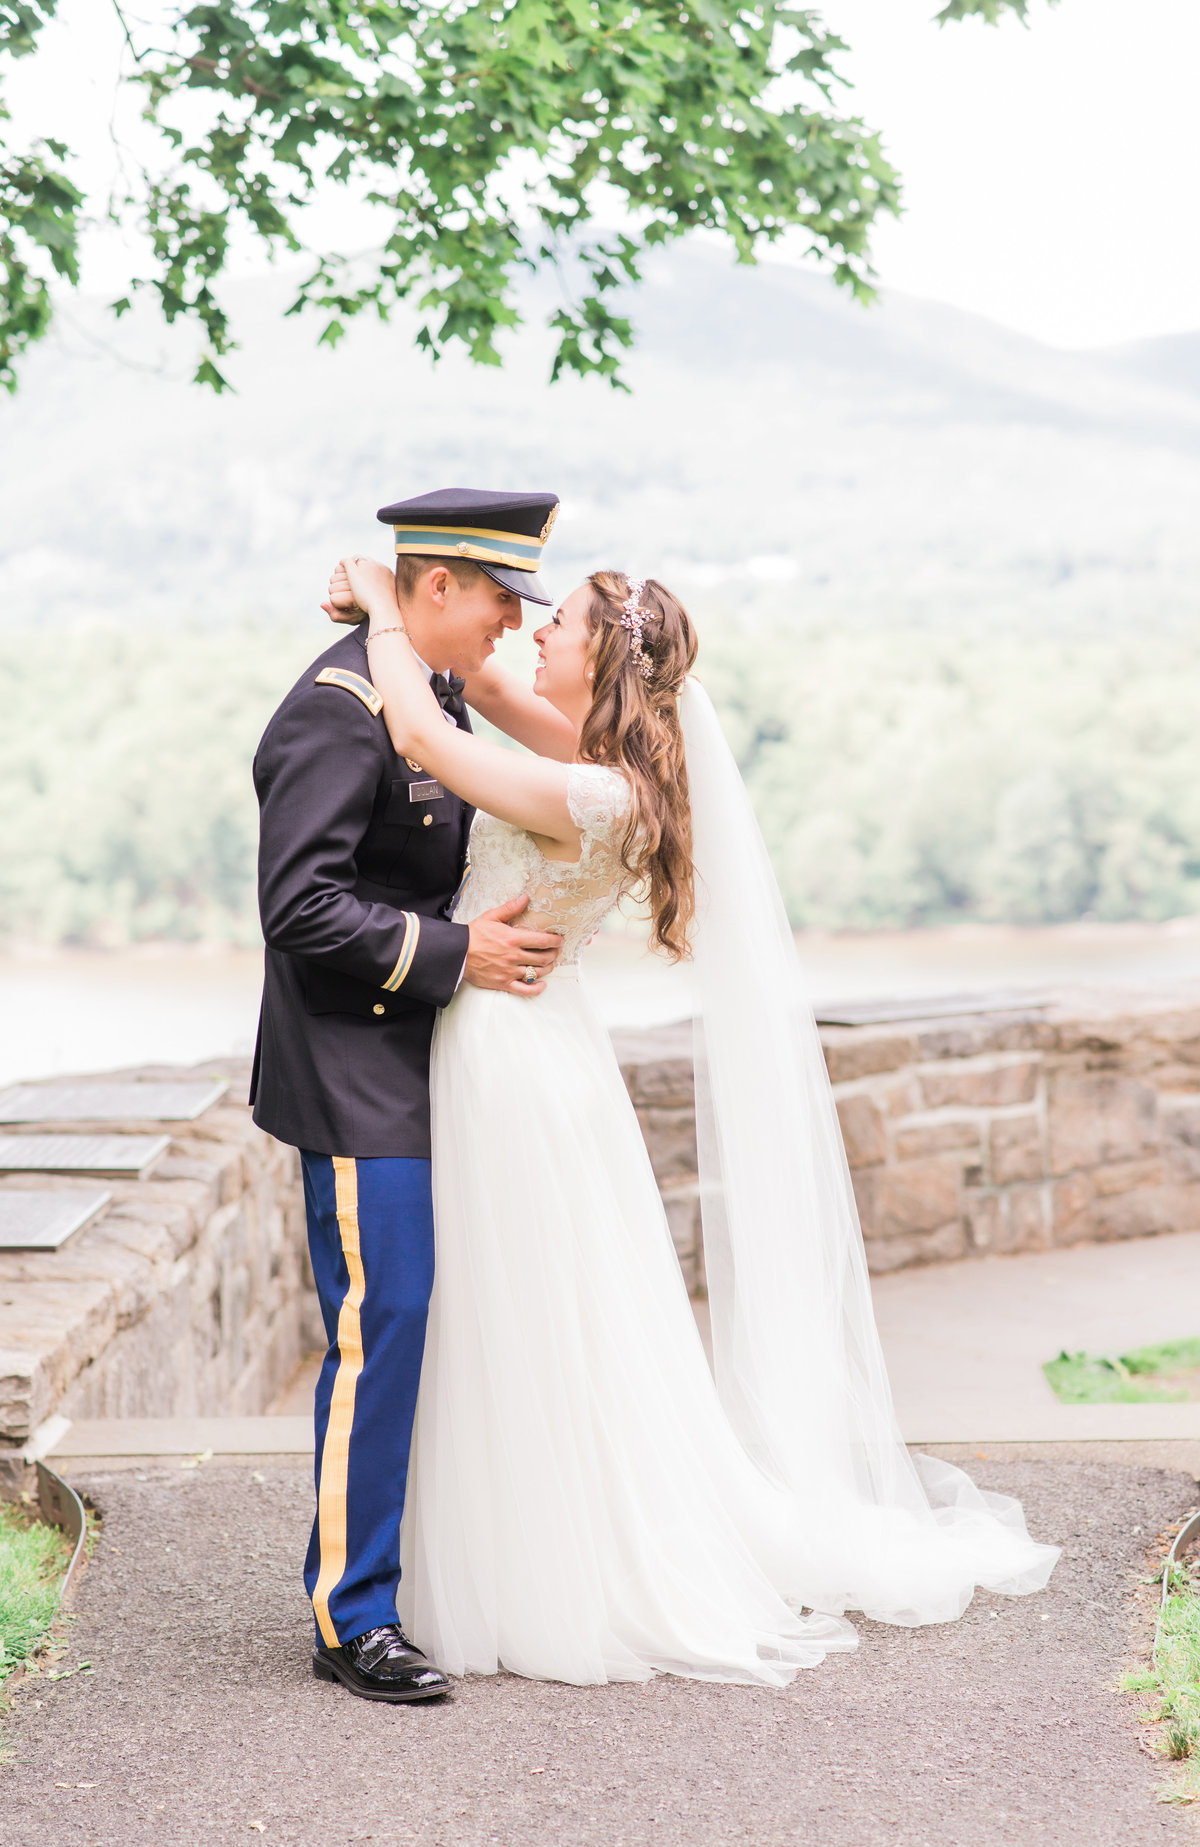 Mississippi-Pearl-Photography-New-York-wedding-photographer-west-point-military-hudson-valley-3345